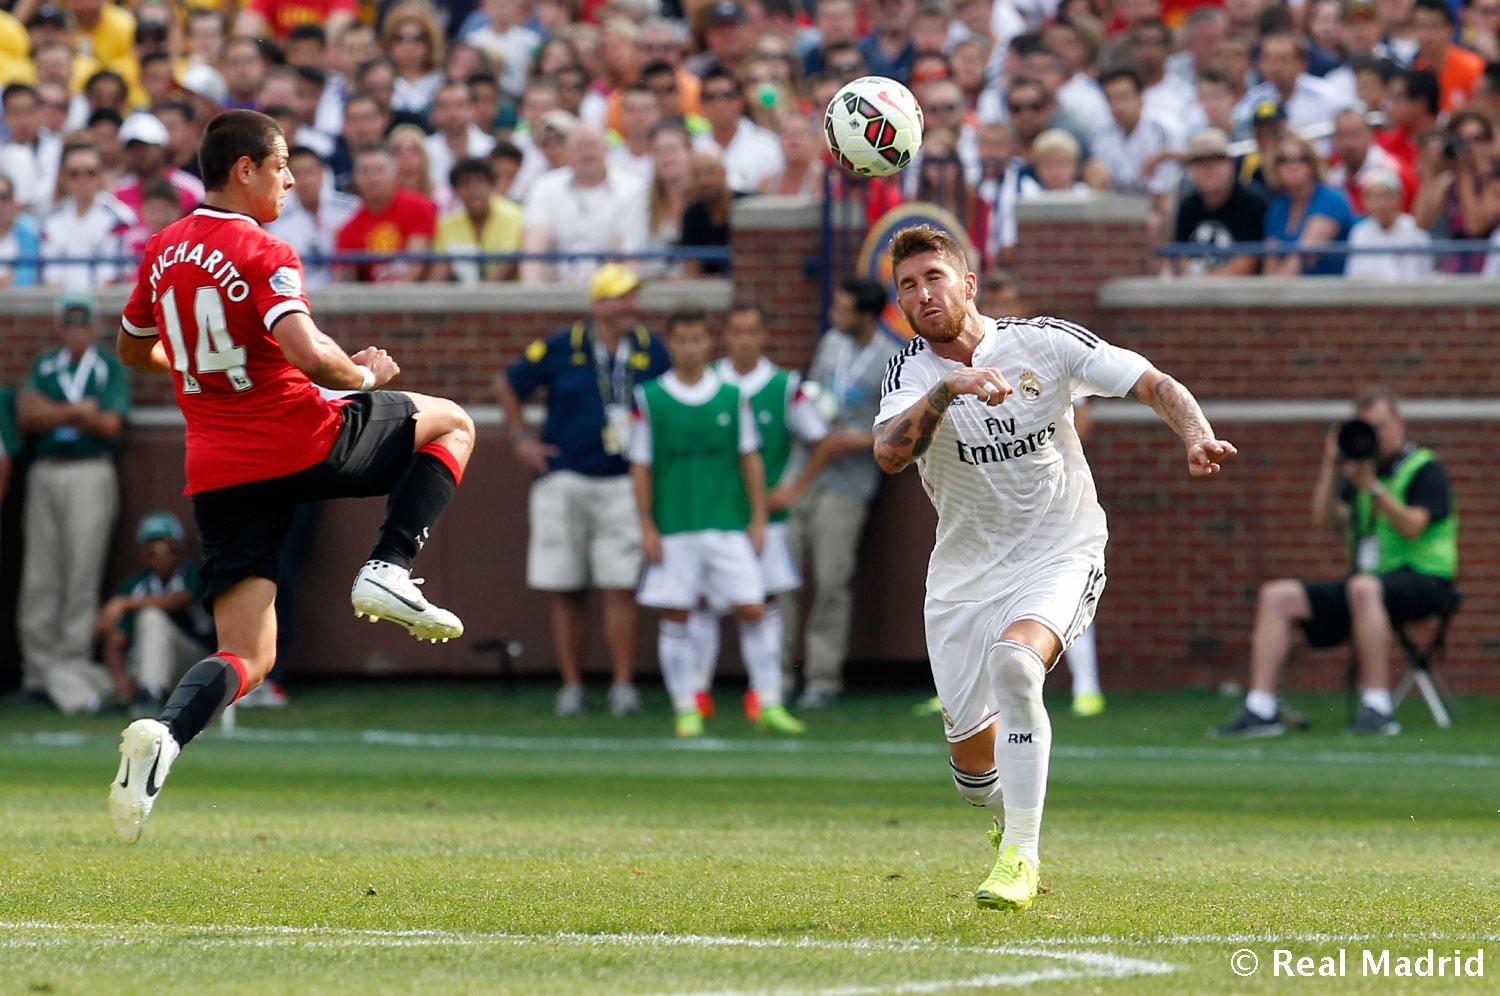 Real Madrid - Manchester United - Real Madrid - 03-08-2014